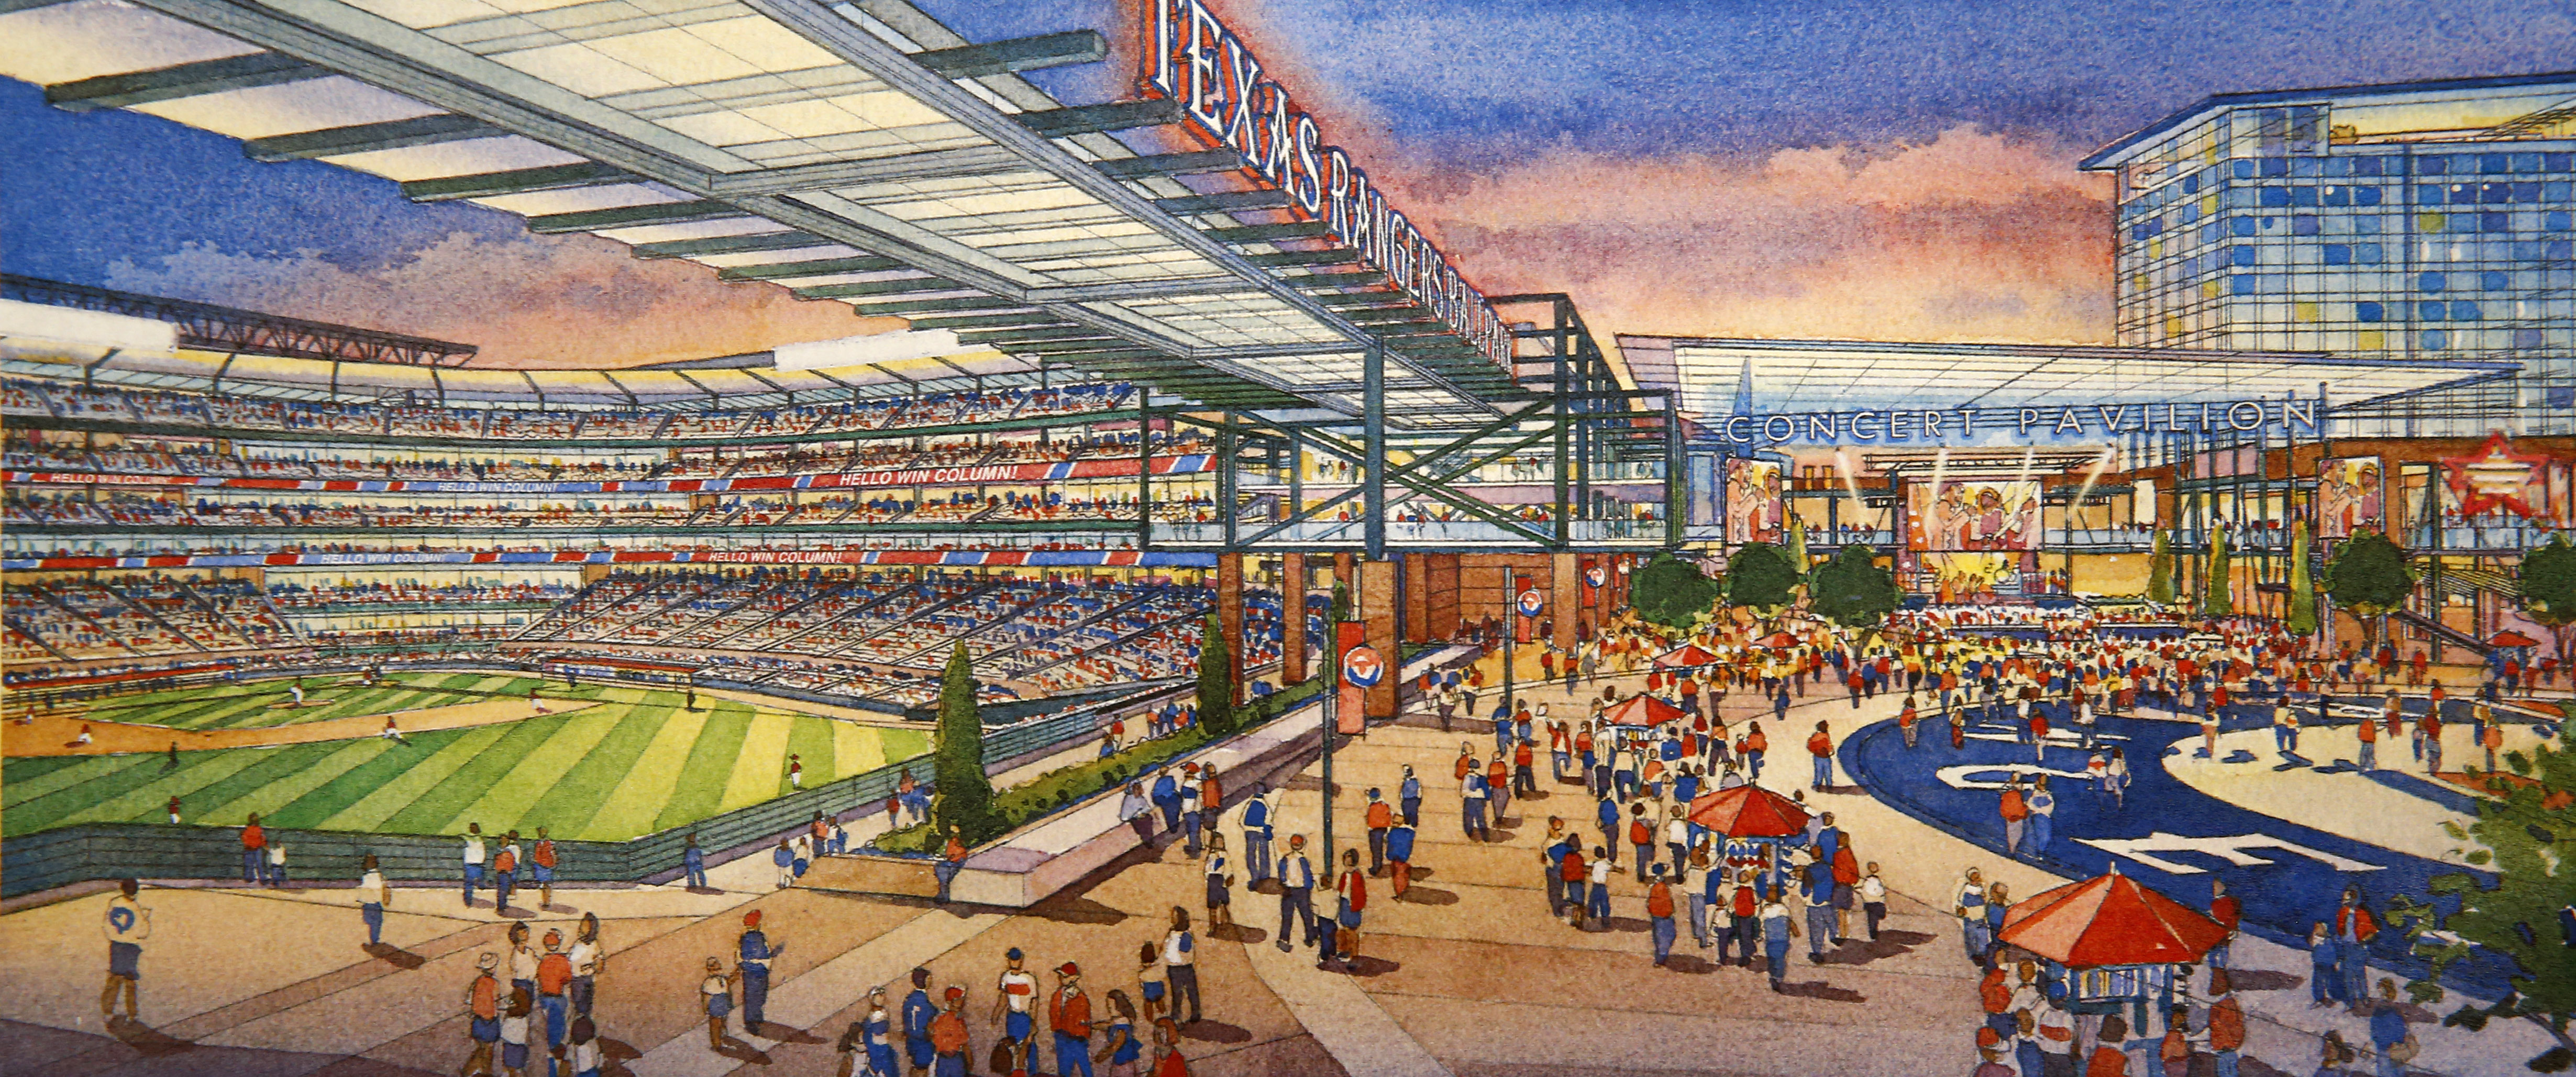 texas rangers rangers new stadium plans unveiled out what texas rangers rangers new stadium plans unveiled out what it will cost and timeline for its construction sportsday